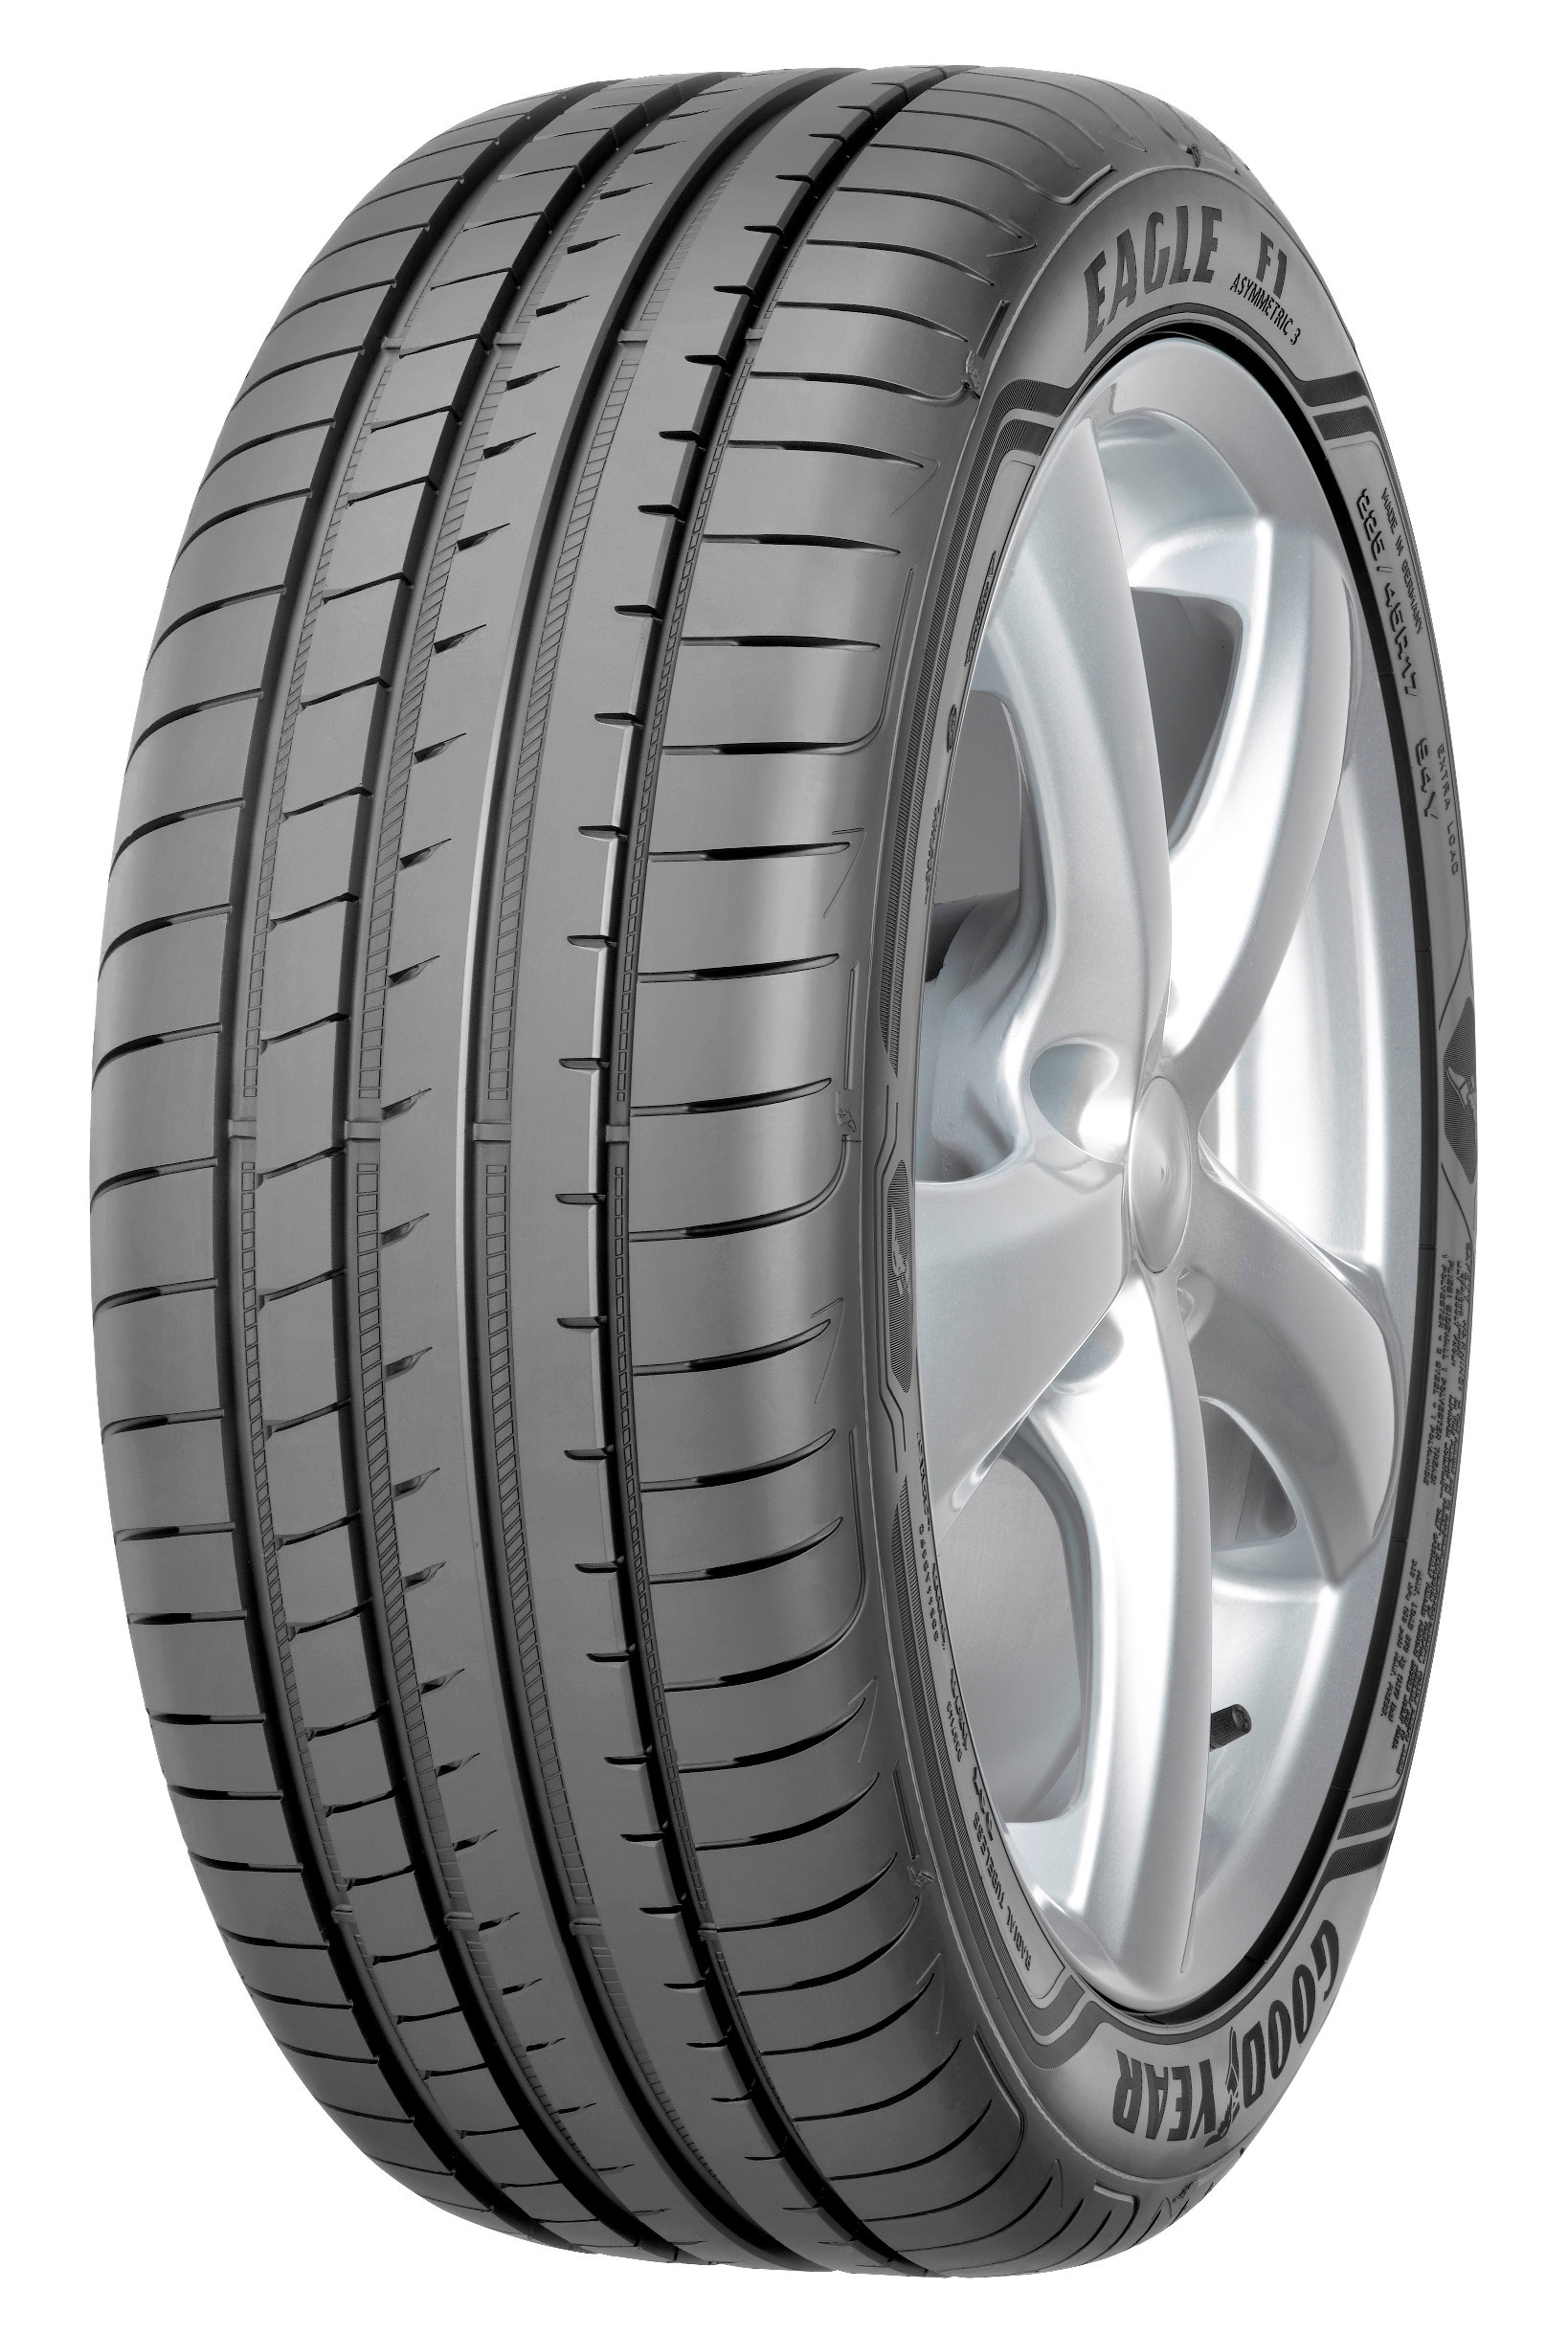 Anvelopa Vara 245/40R18 97Y Goodyear Eagle F1 Asymmetric 3 Fp Xl